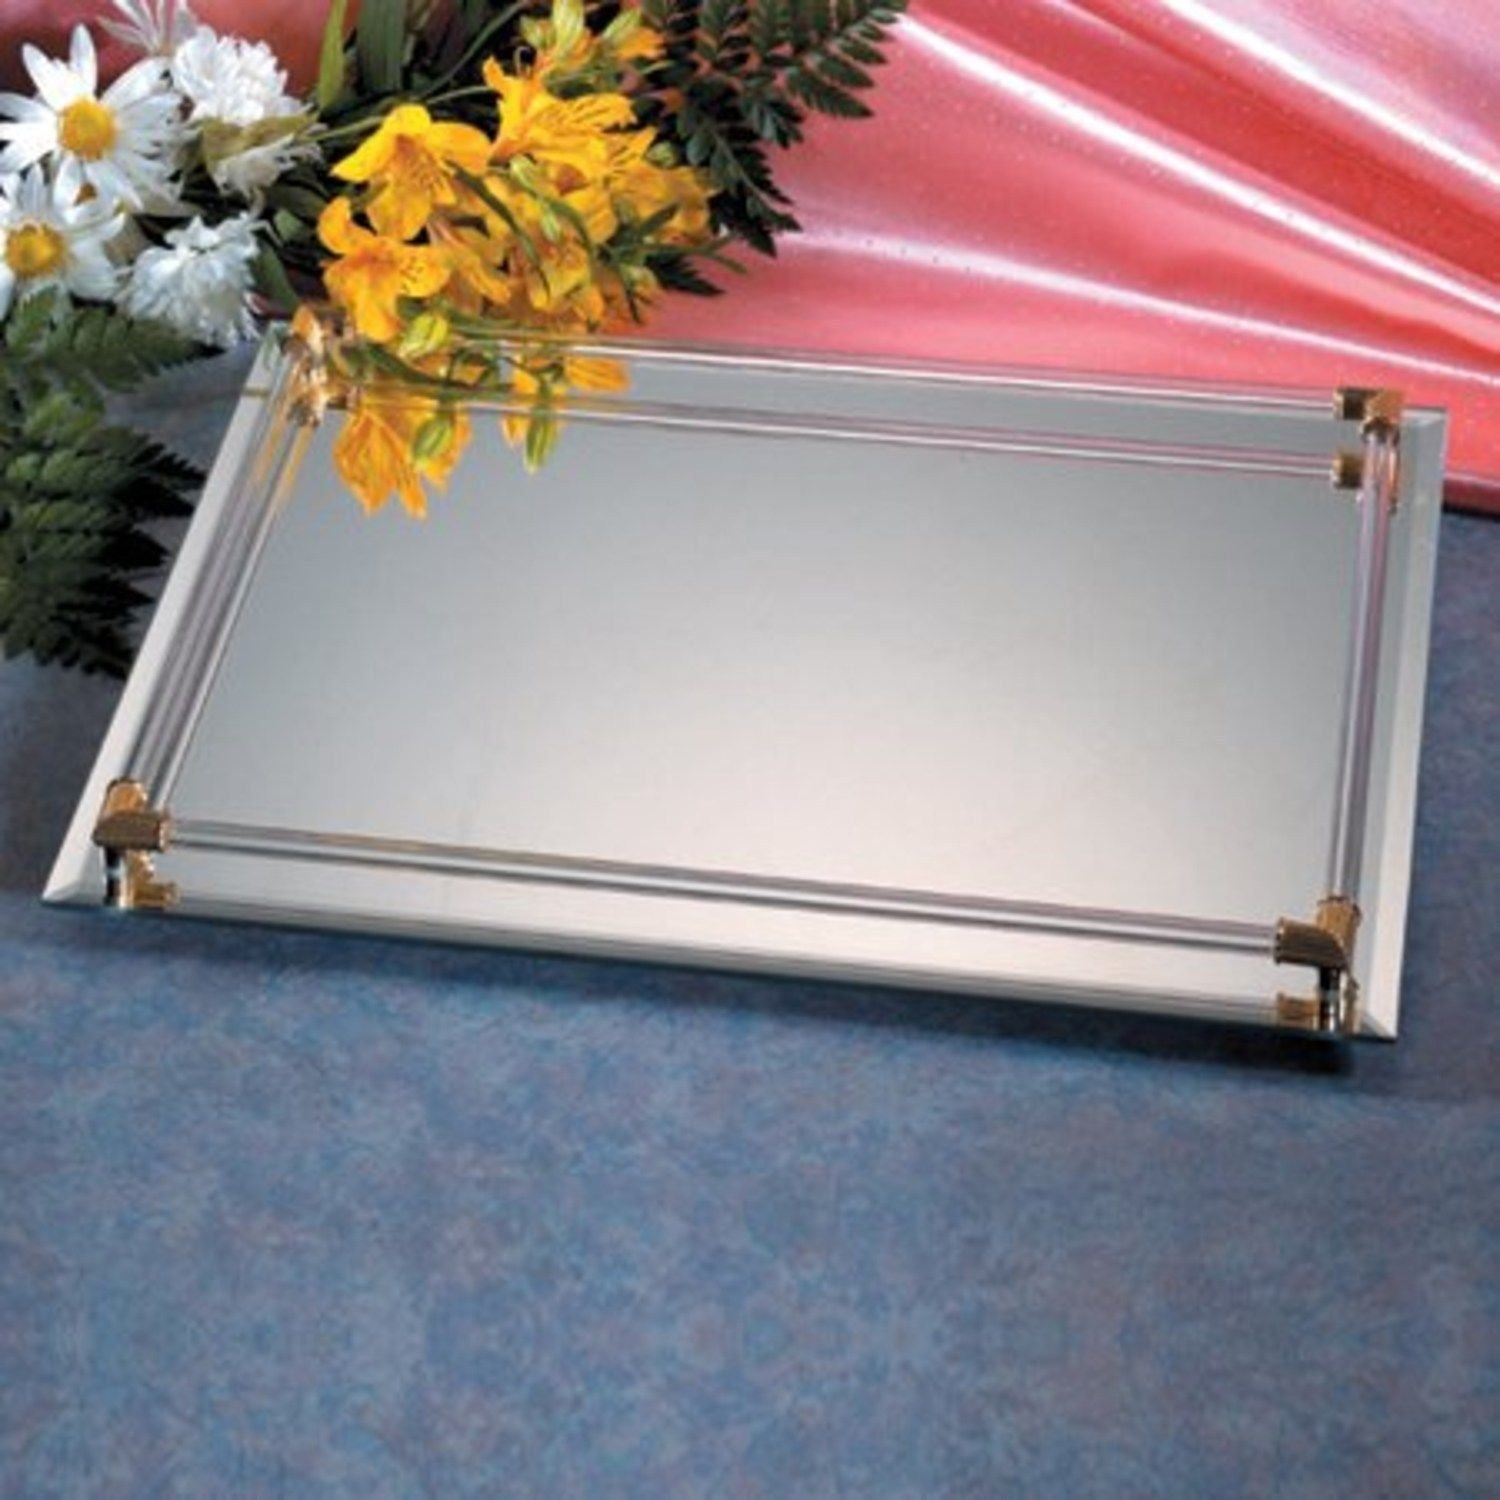 glass for ingenuity perfume superb top dresser mirrored vanity tray silver trays mirror